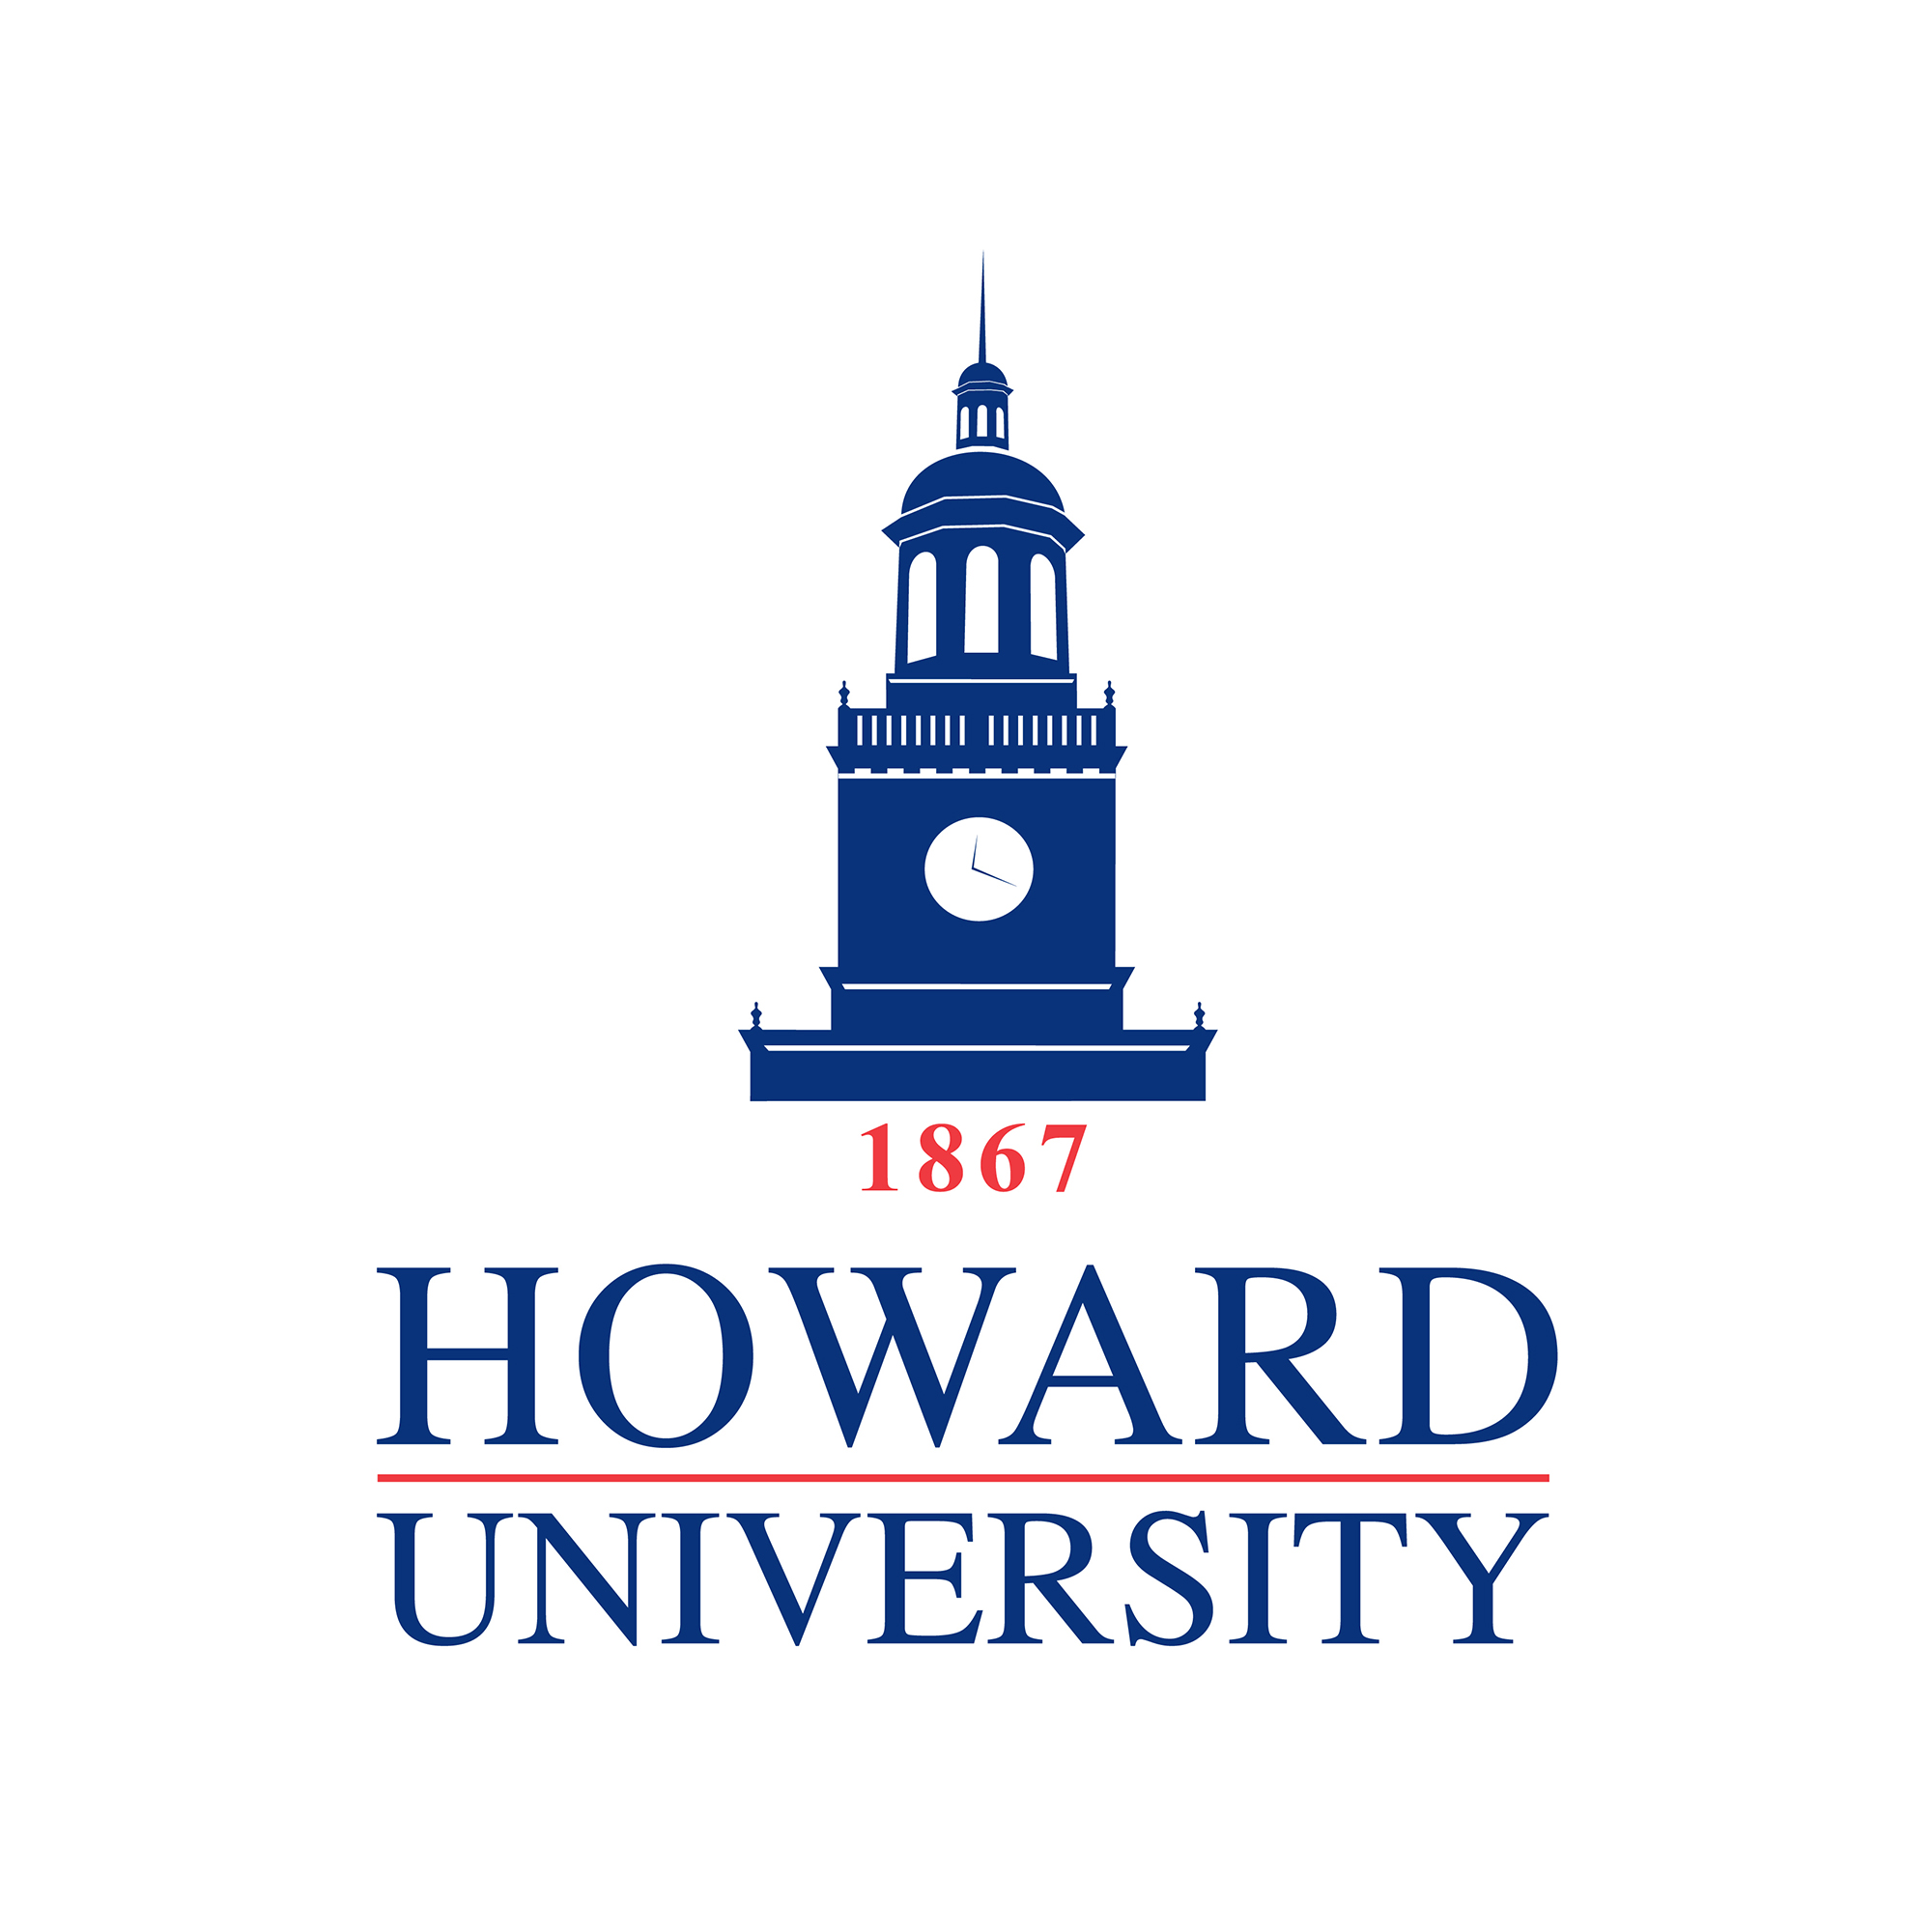 EOAD-Clients-Howard University.jpg